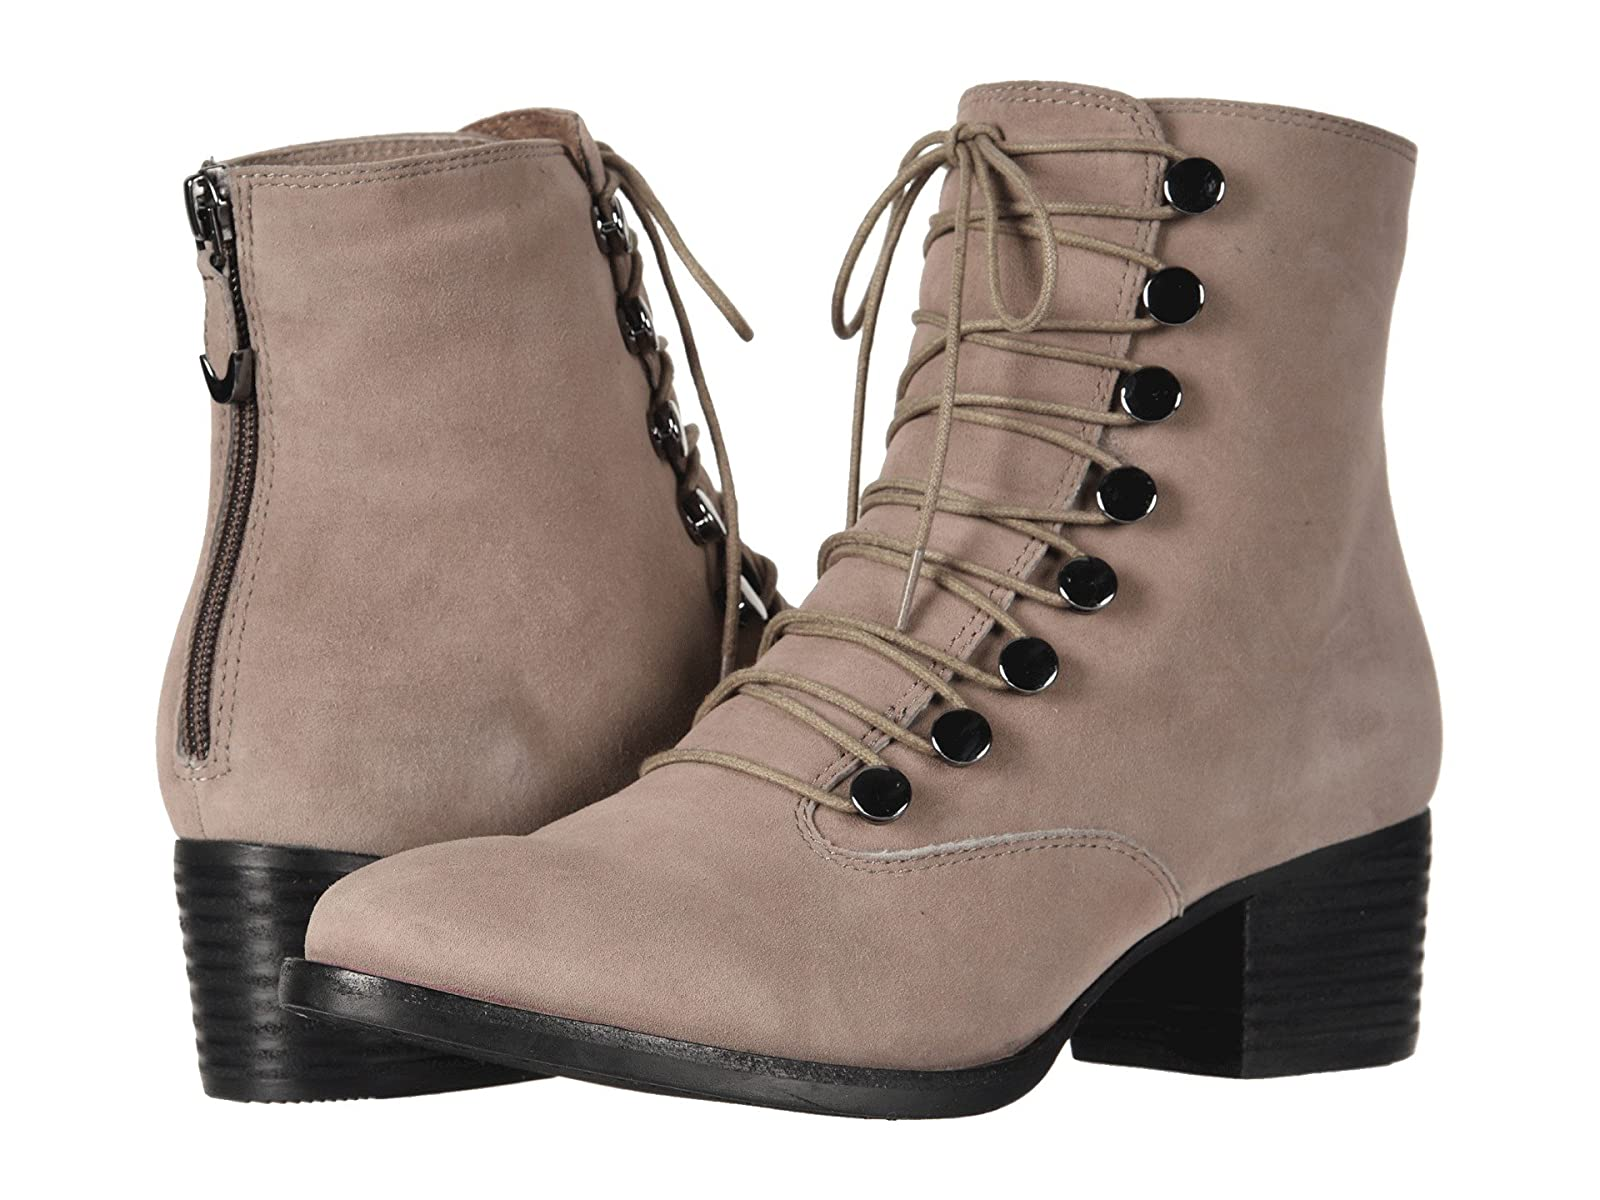 Earth DoralAffordable and distinctive shoes